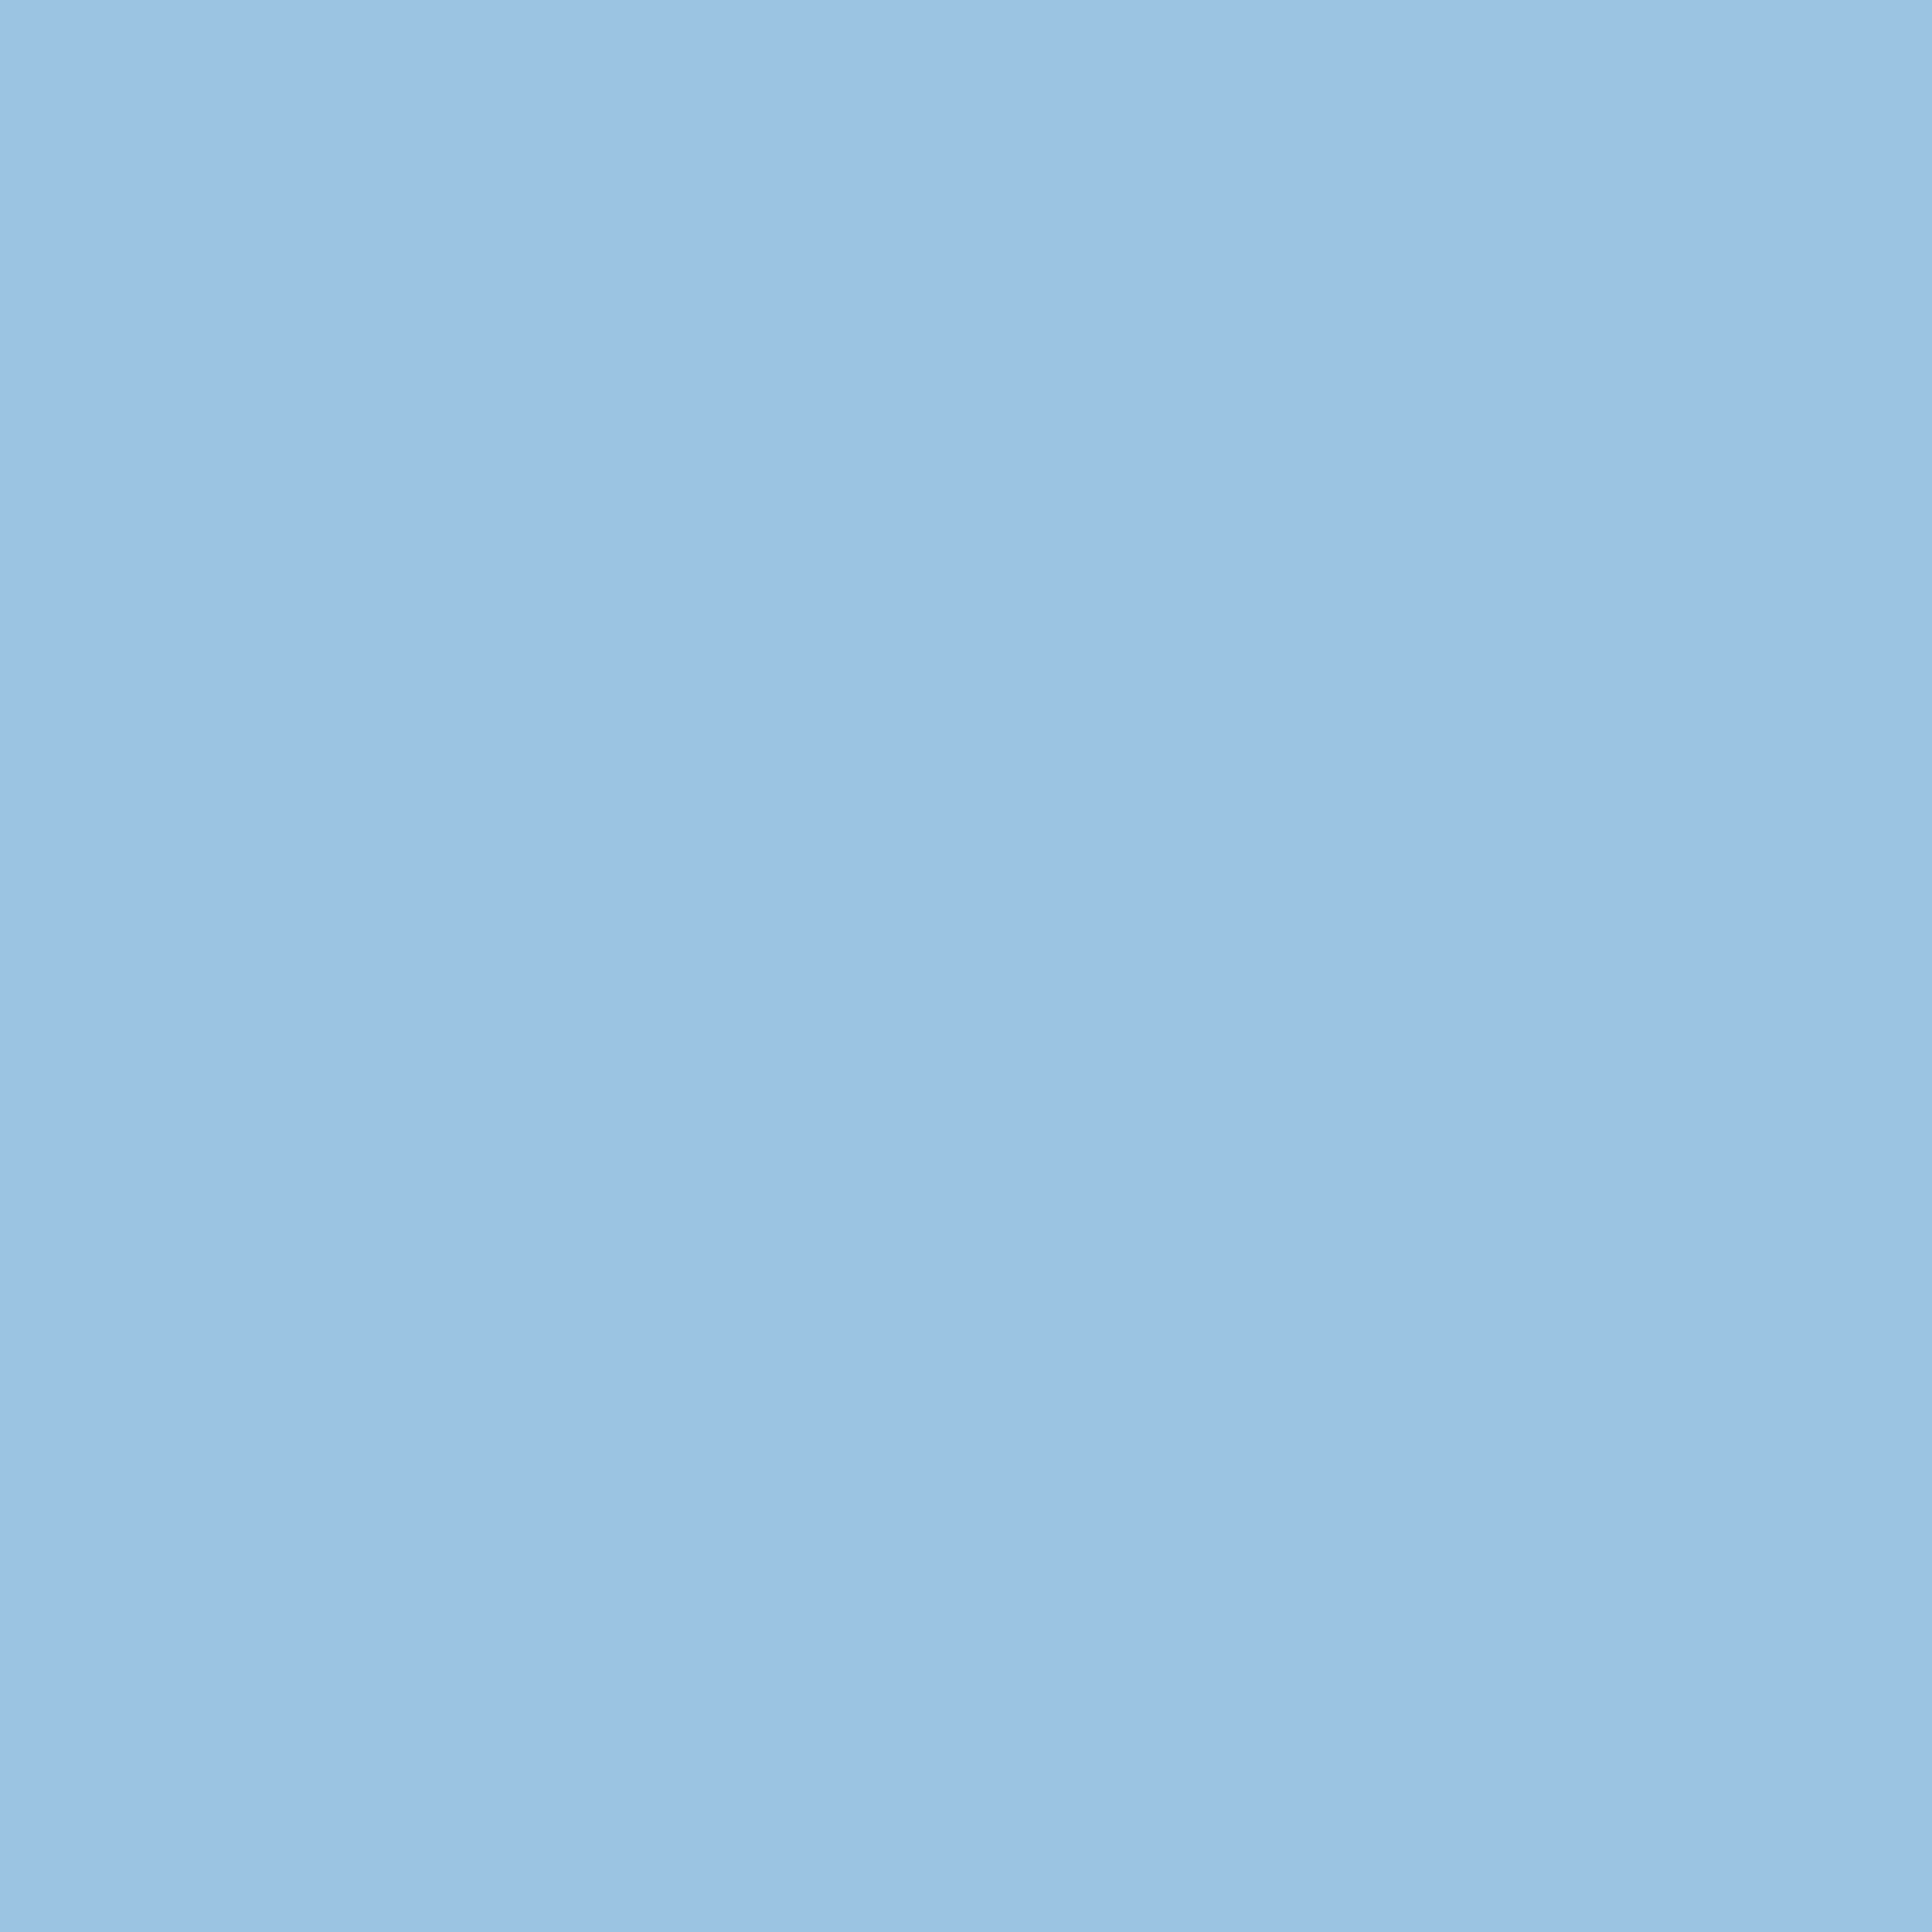 2732x2732 Pale Cerulean Solid Color Background